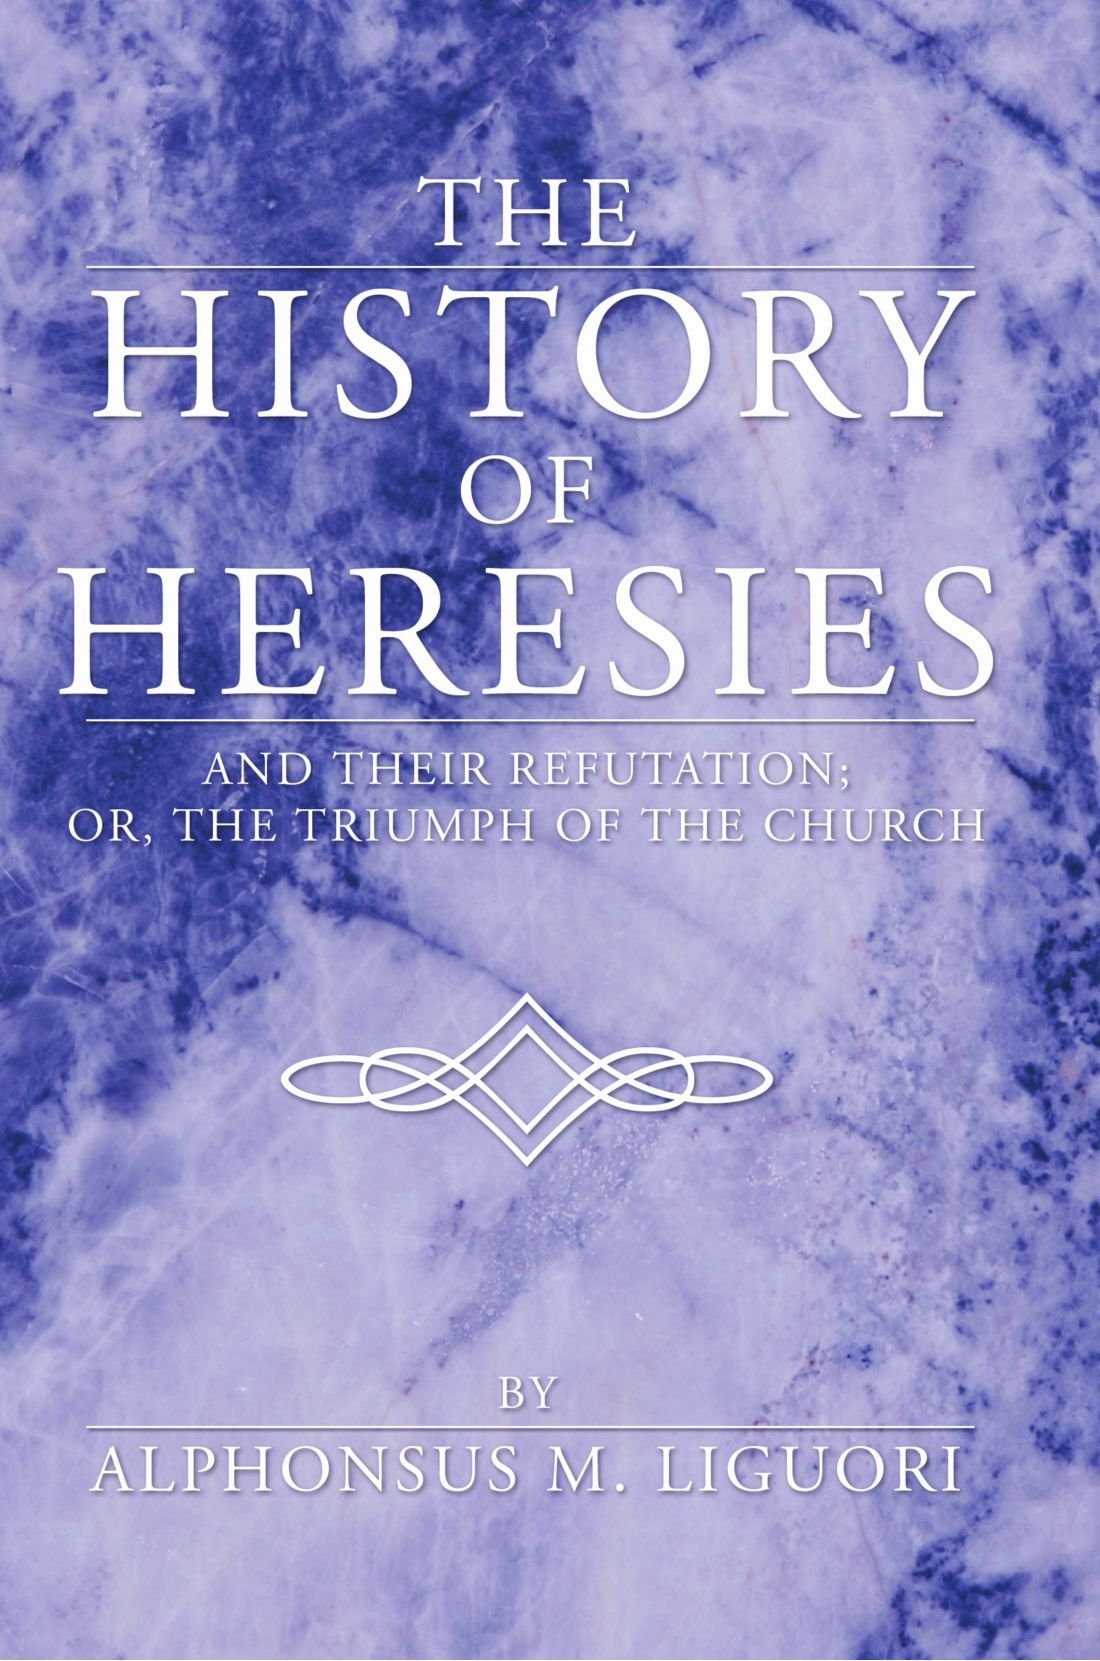 The History of Heresies: and their refutation; or, the triumph of the Church pdf